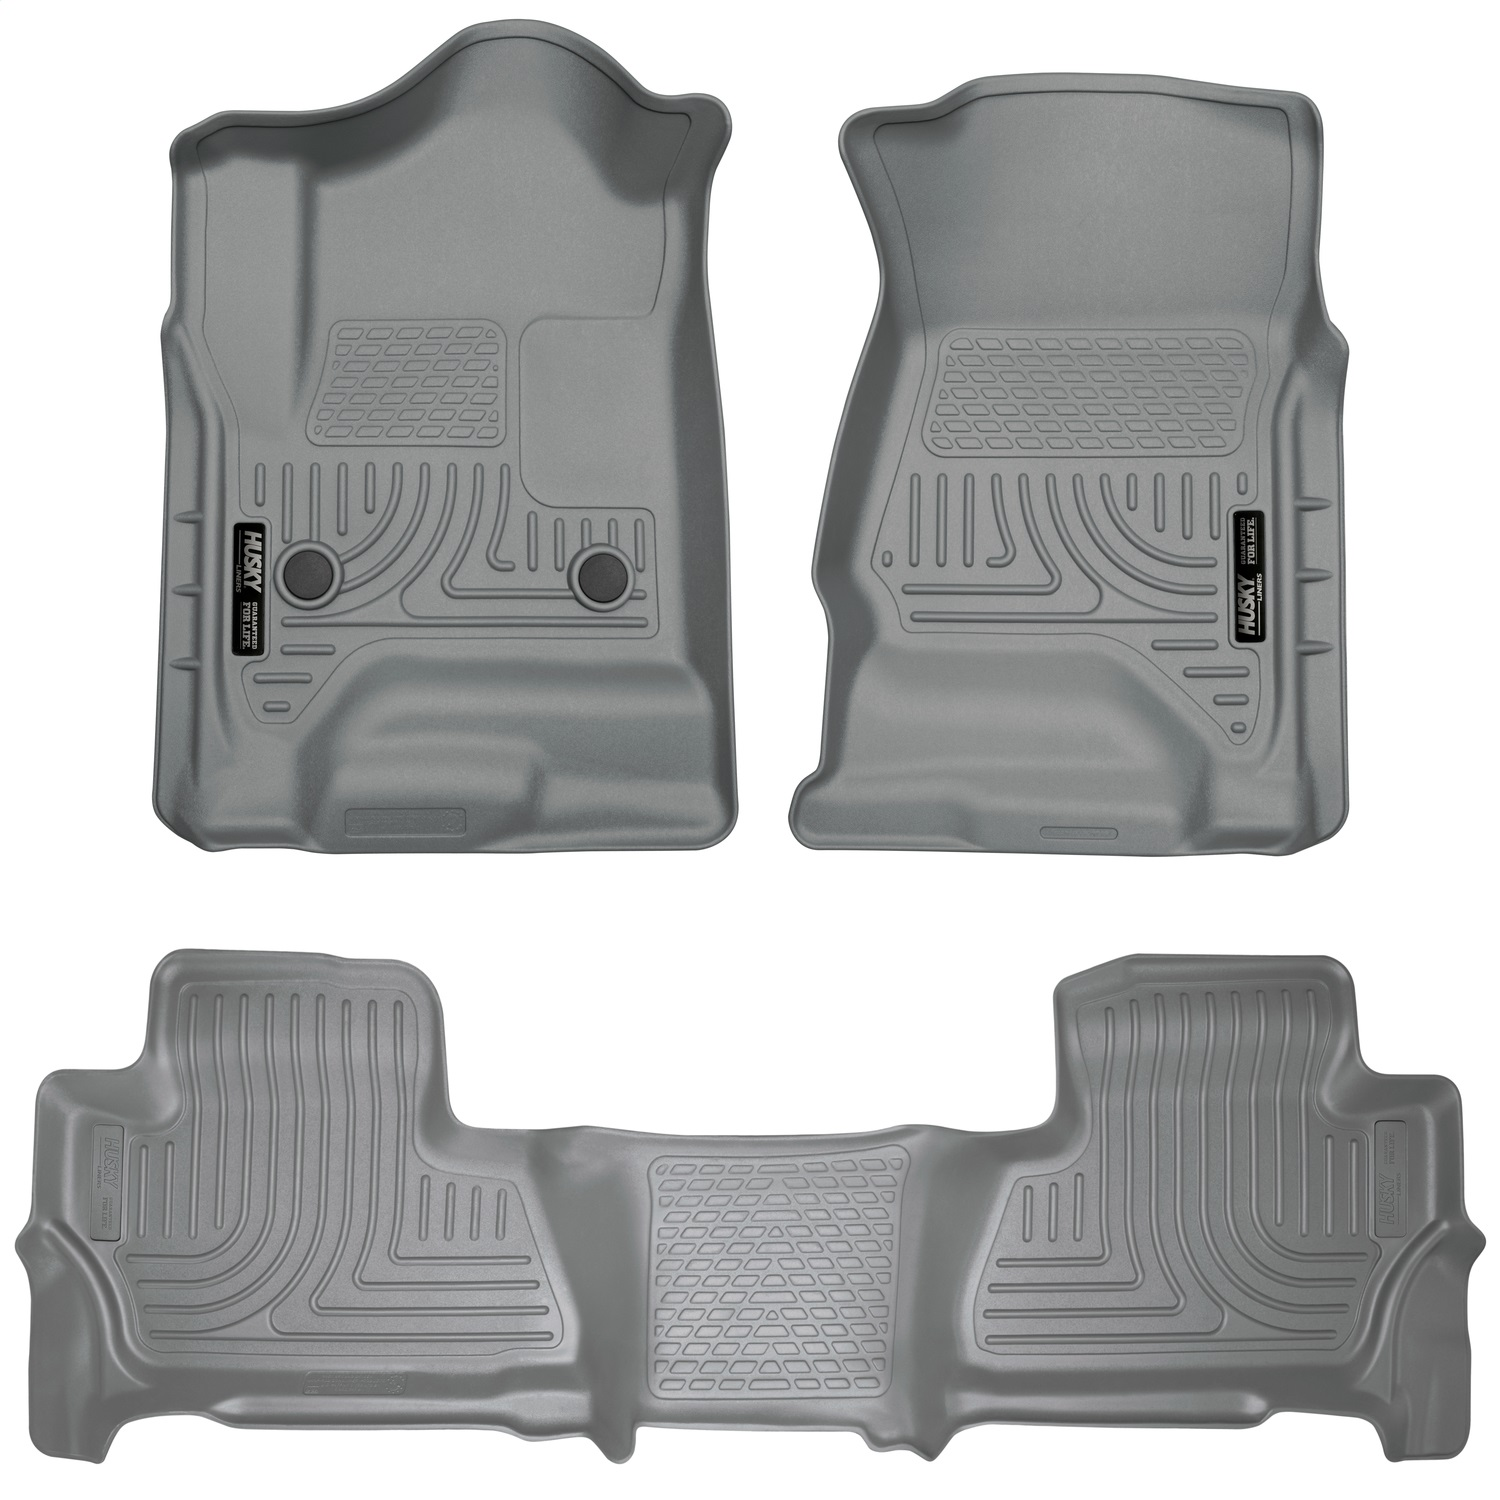 Husky Liners 99202 WeatherBeater Floor Liner Escalade Escalade ESV Tahoe Yukon at Sears.com